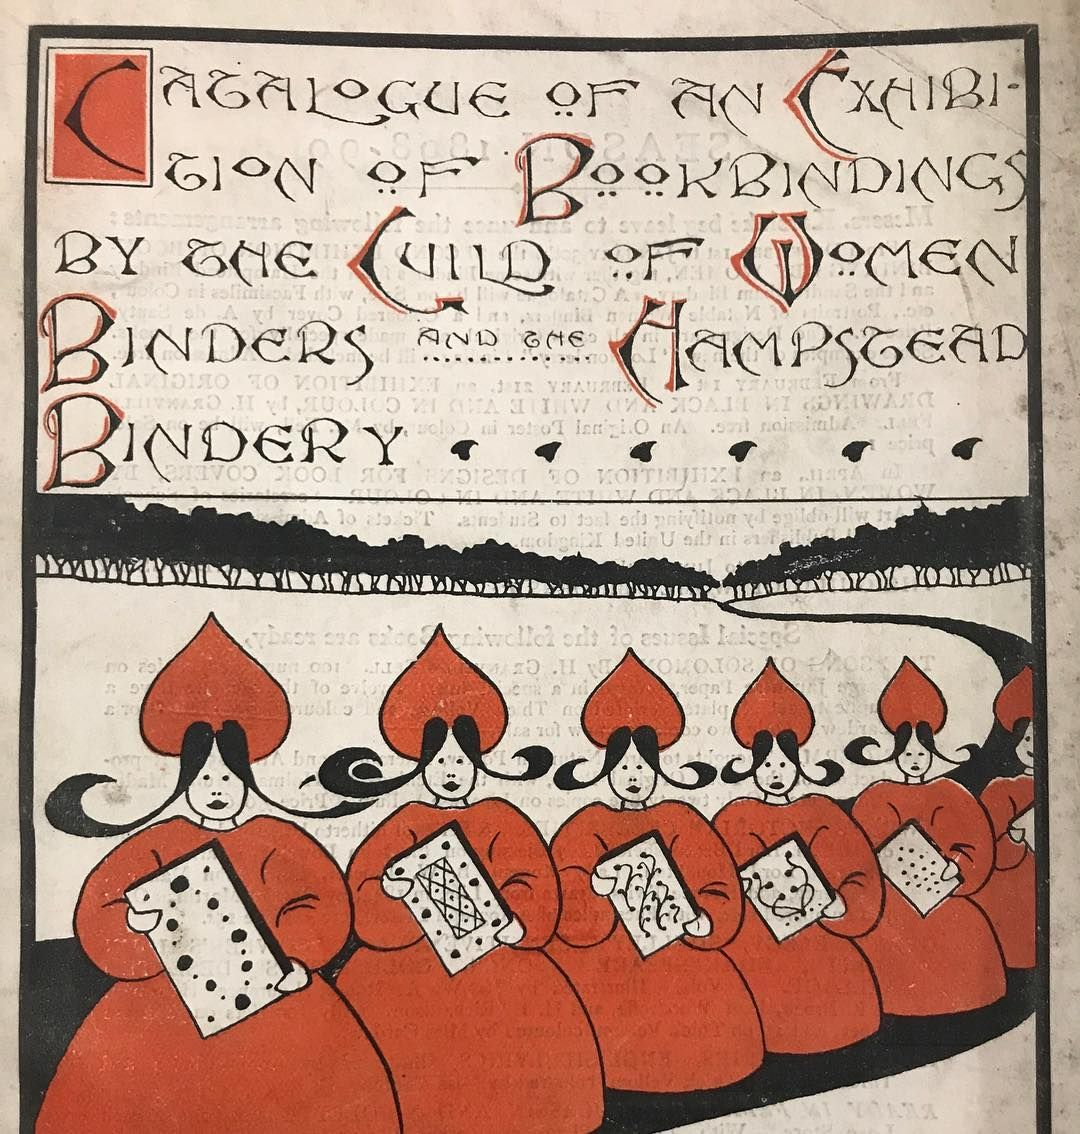 Catalogue Of An Exhibition Of Bookbinding By The Guild Of